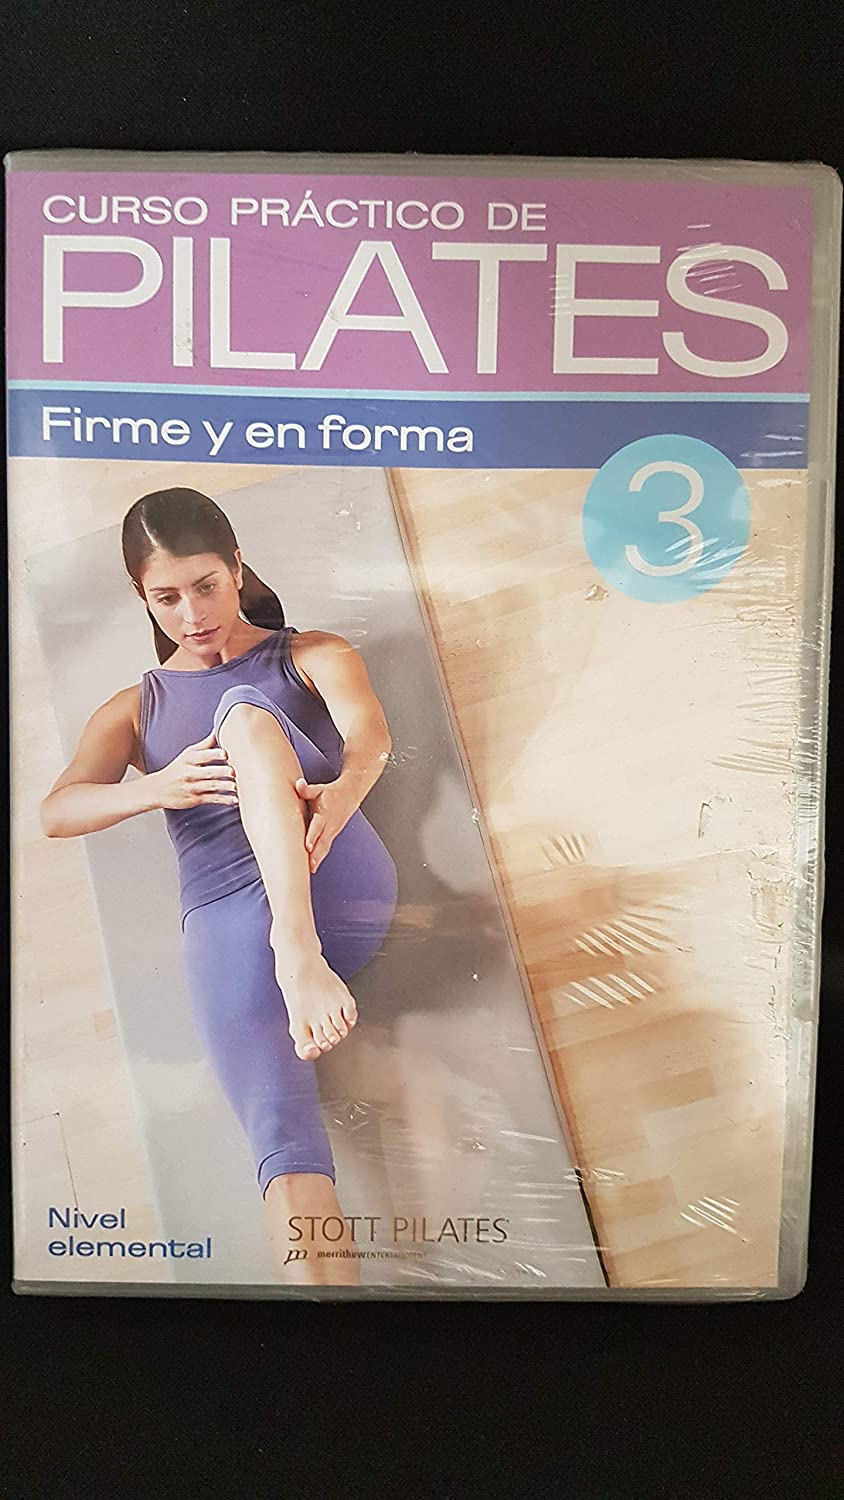 Pilates Firme y en Forma DVD [DVD]: Amazon.es: Cine y Series TV